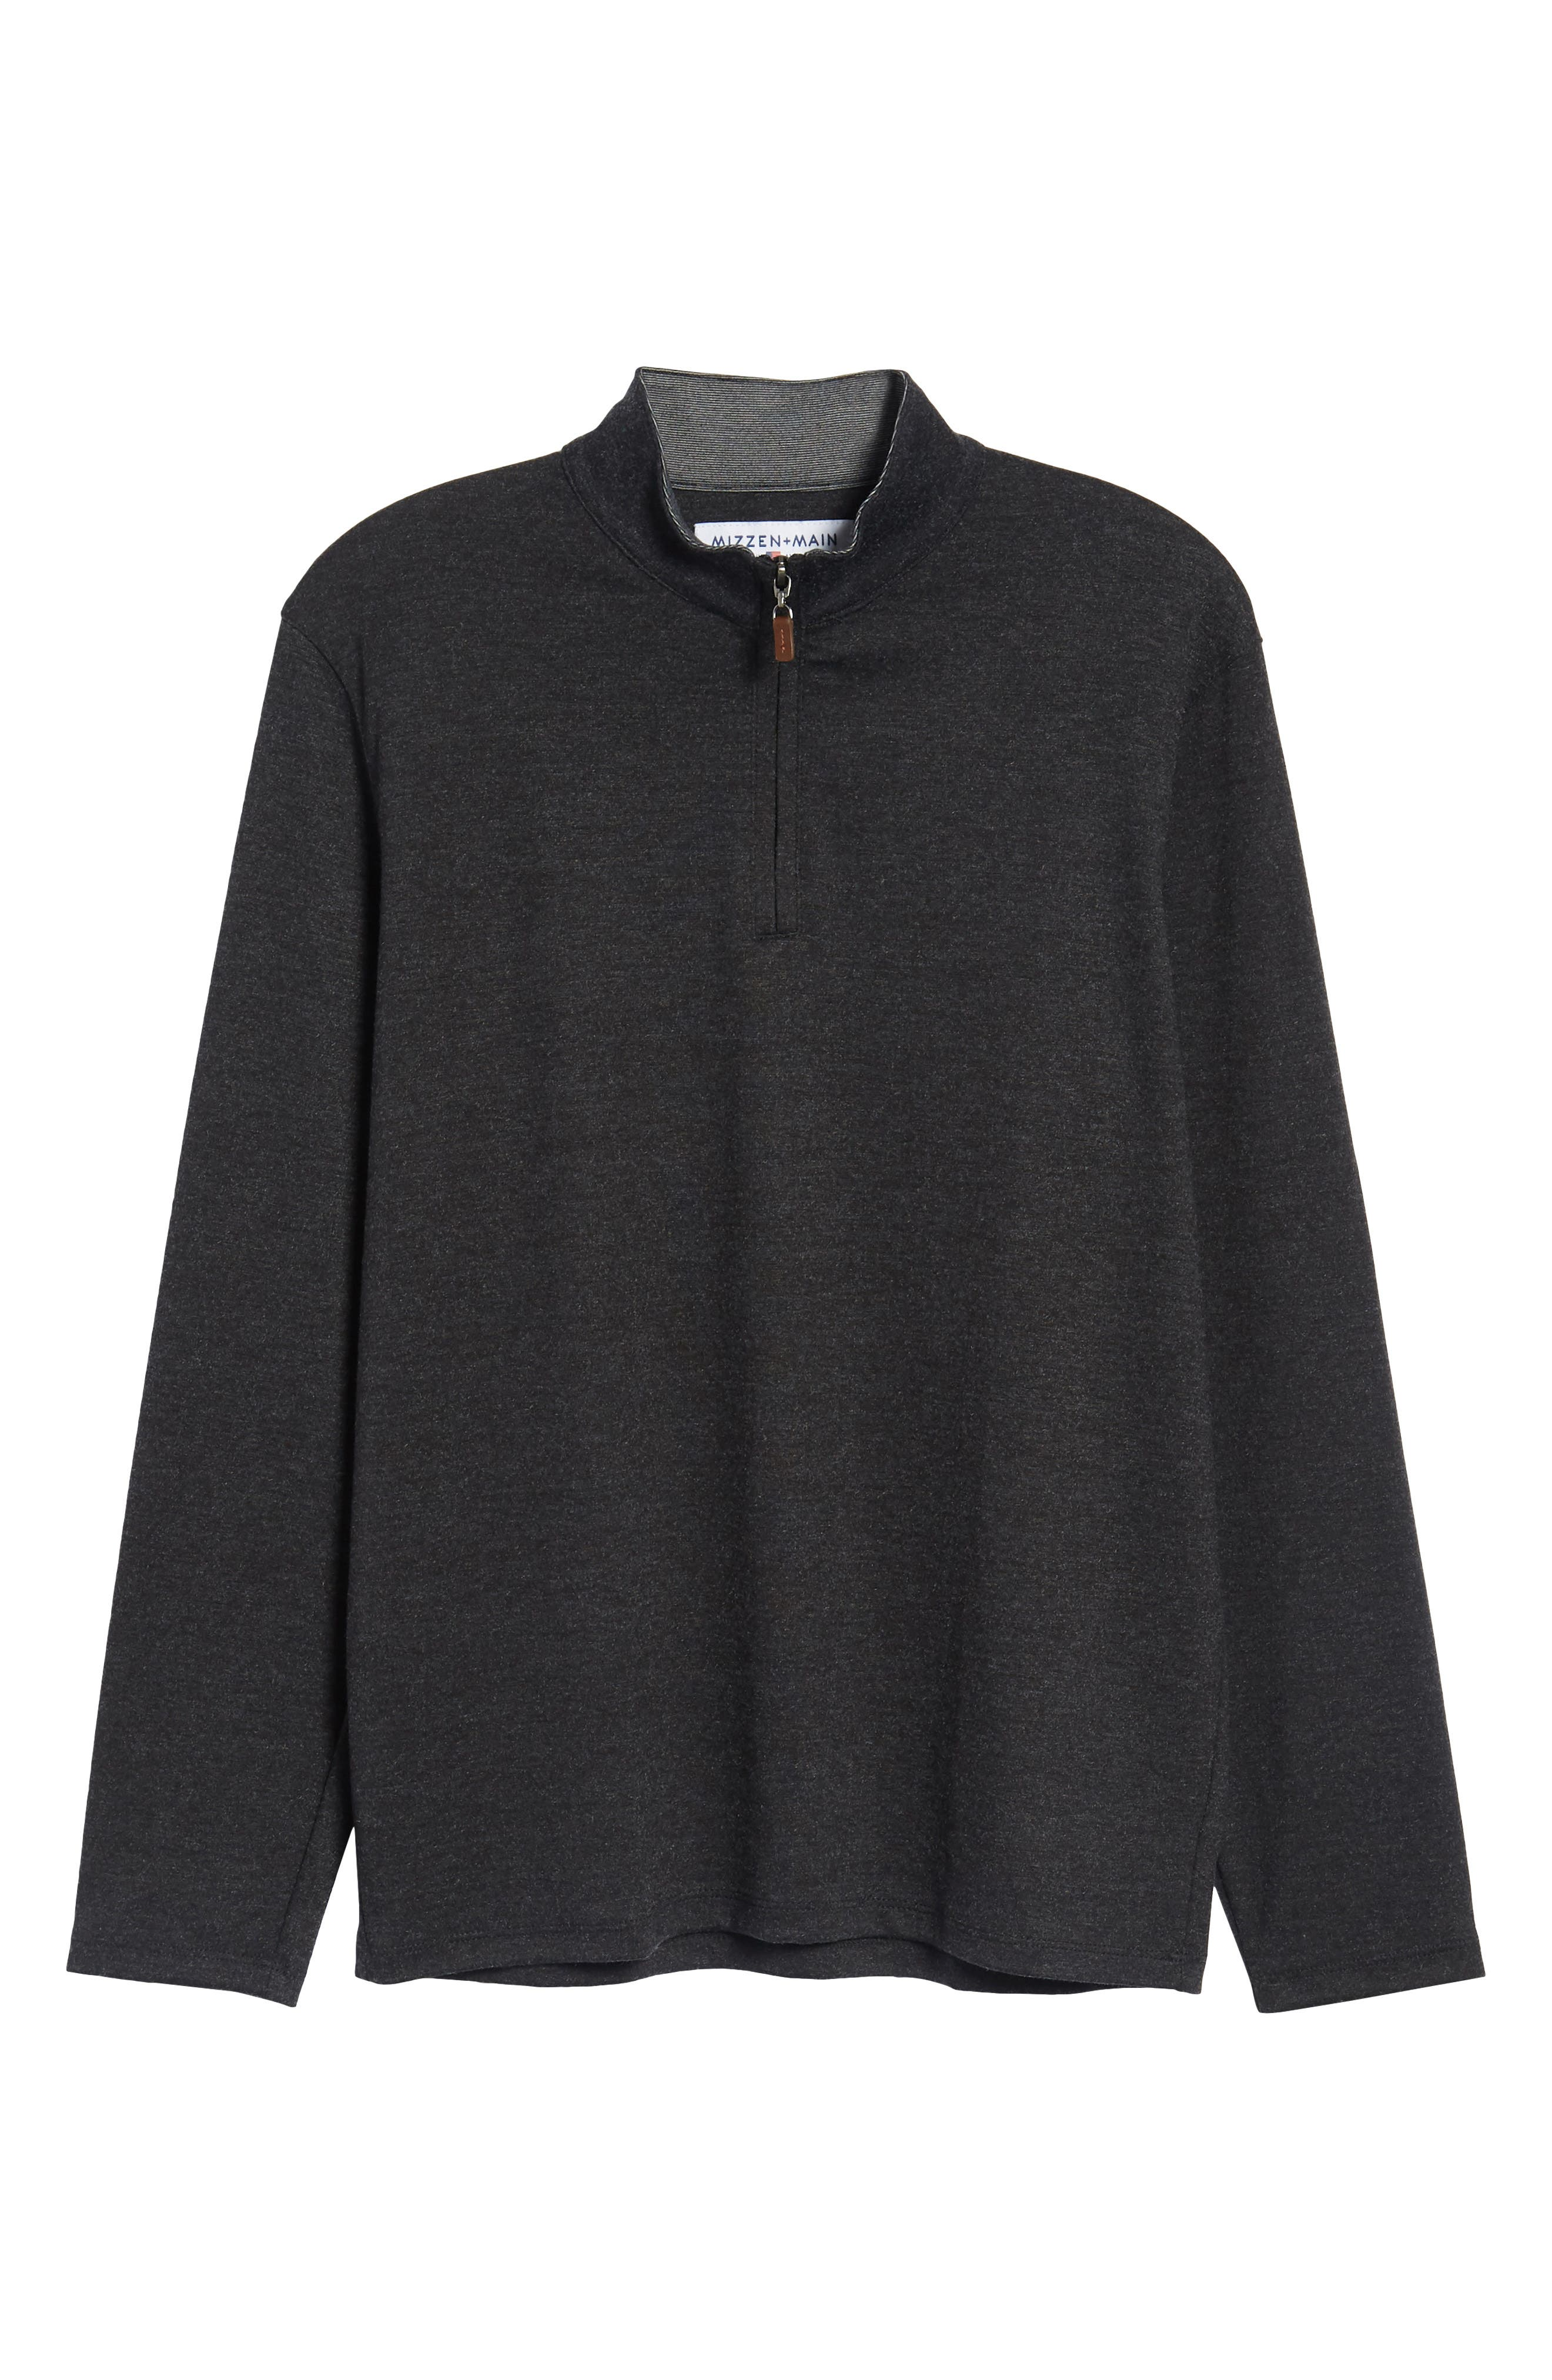 North Mock Neck Pullover,                             Alternate thumbnail 6, color,                             NORTH GREY